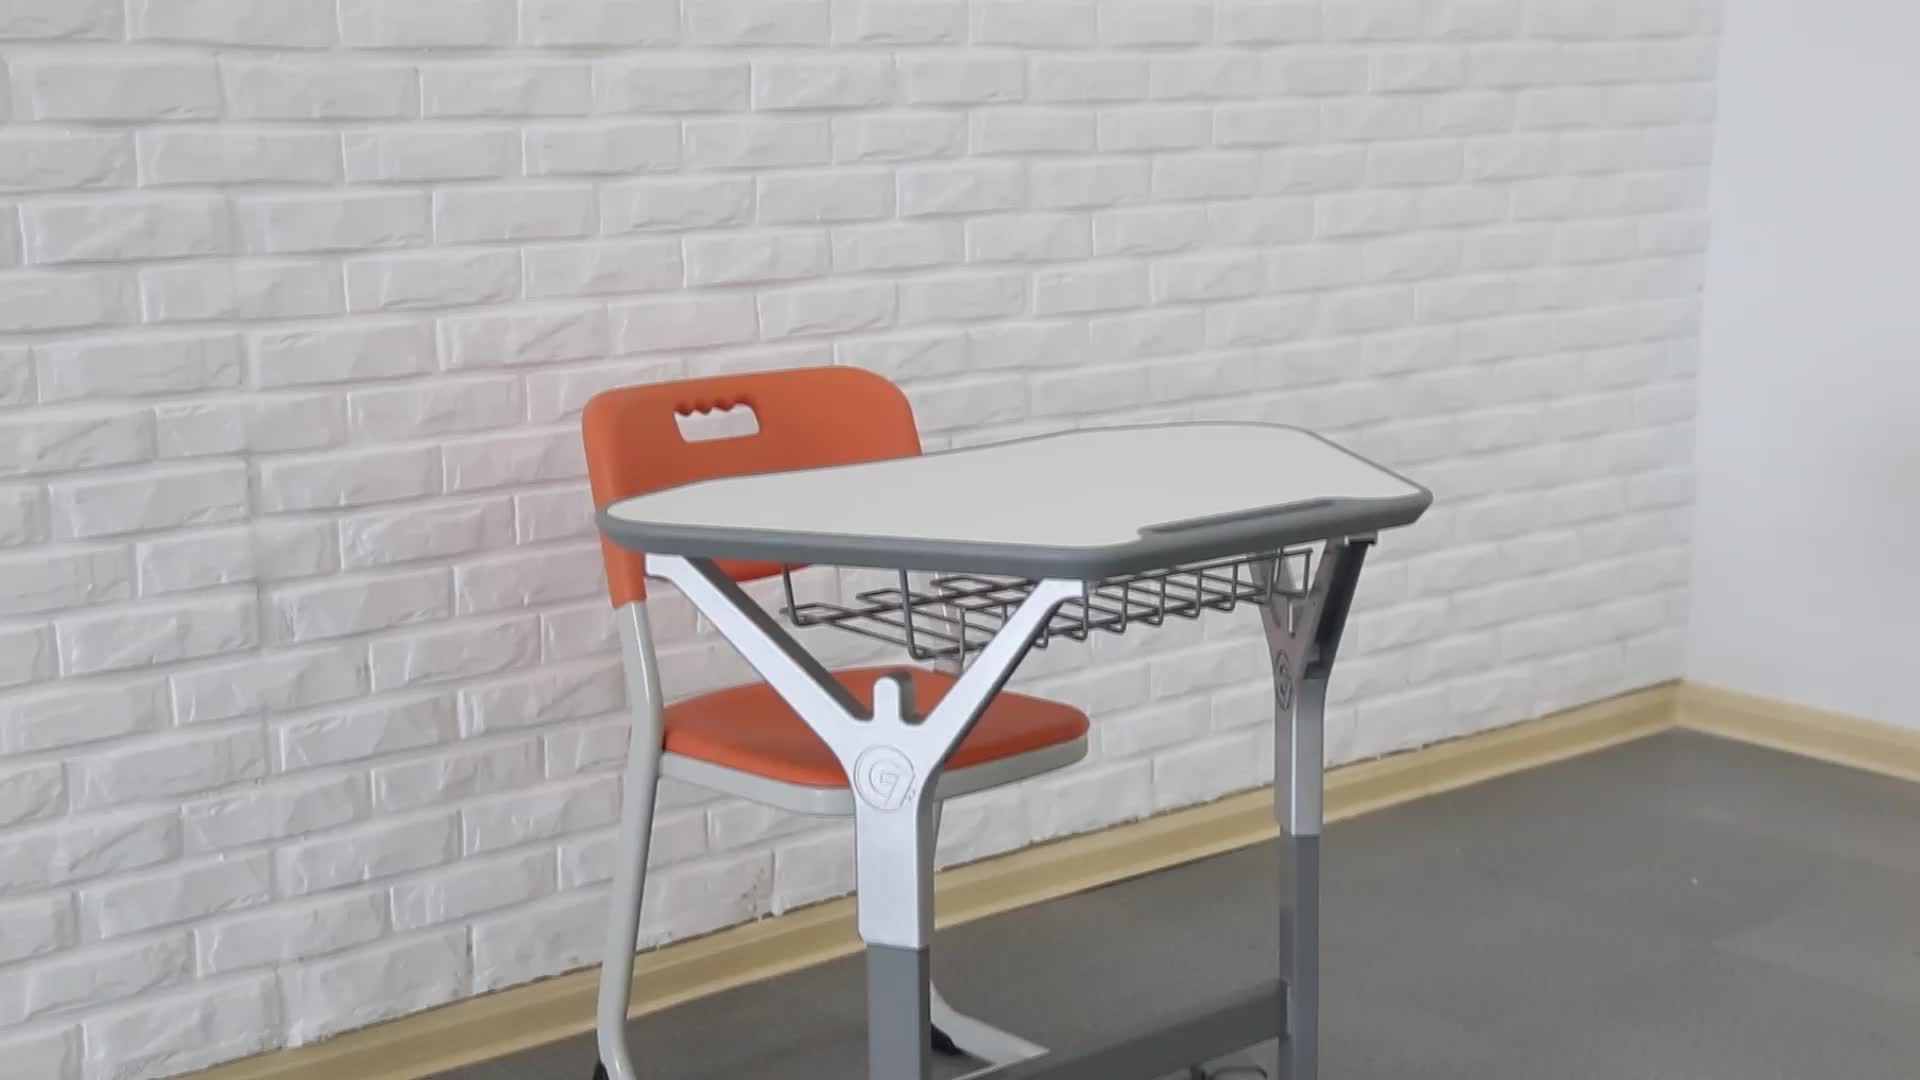 Modern Trapezoid Single Student Desk and Chairs furniture for school